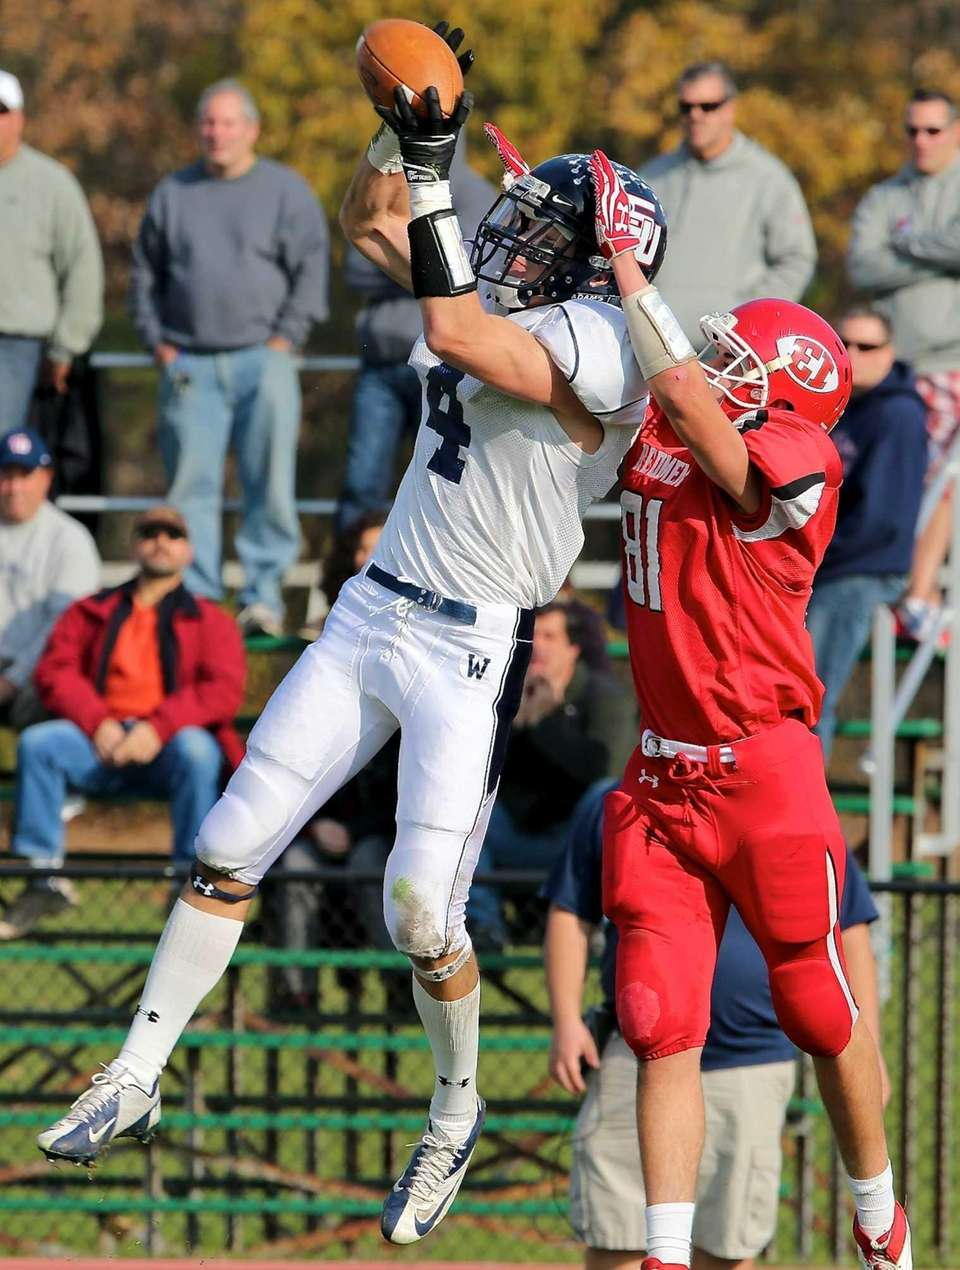 Smithtown West's Kyle Mathie almost intercepts the pass